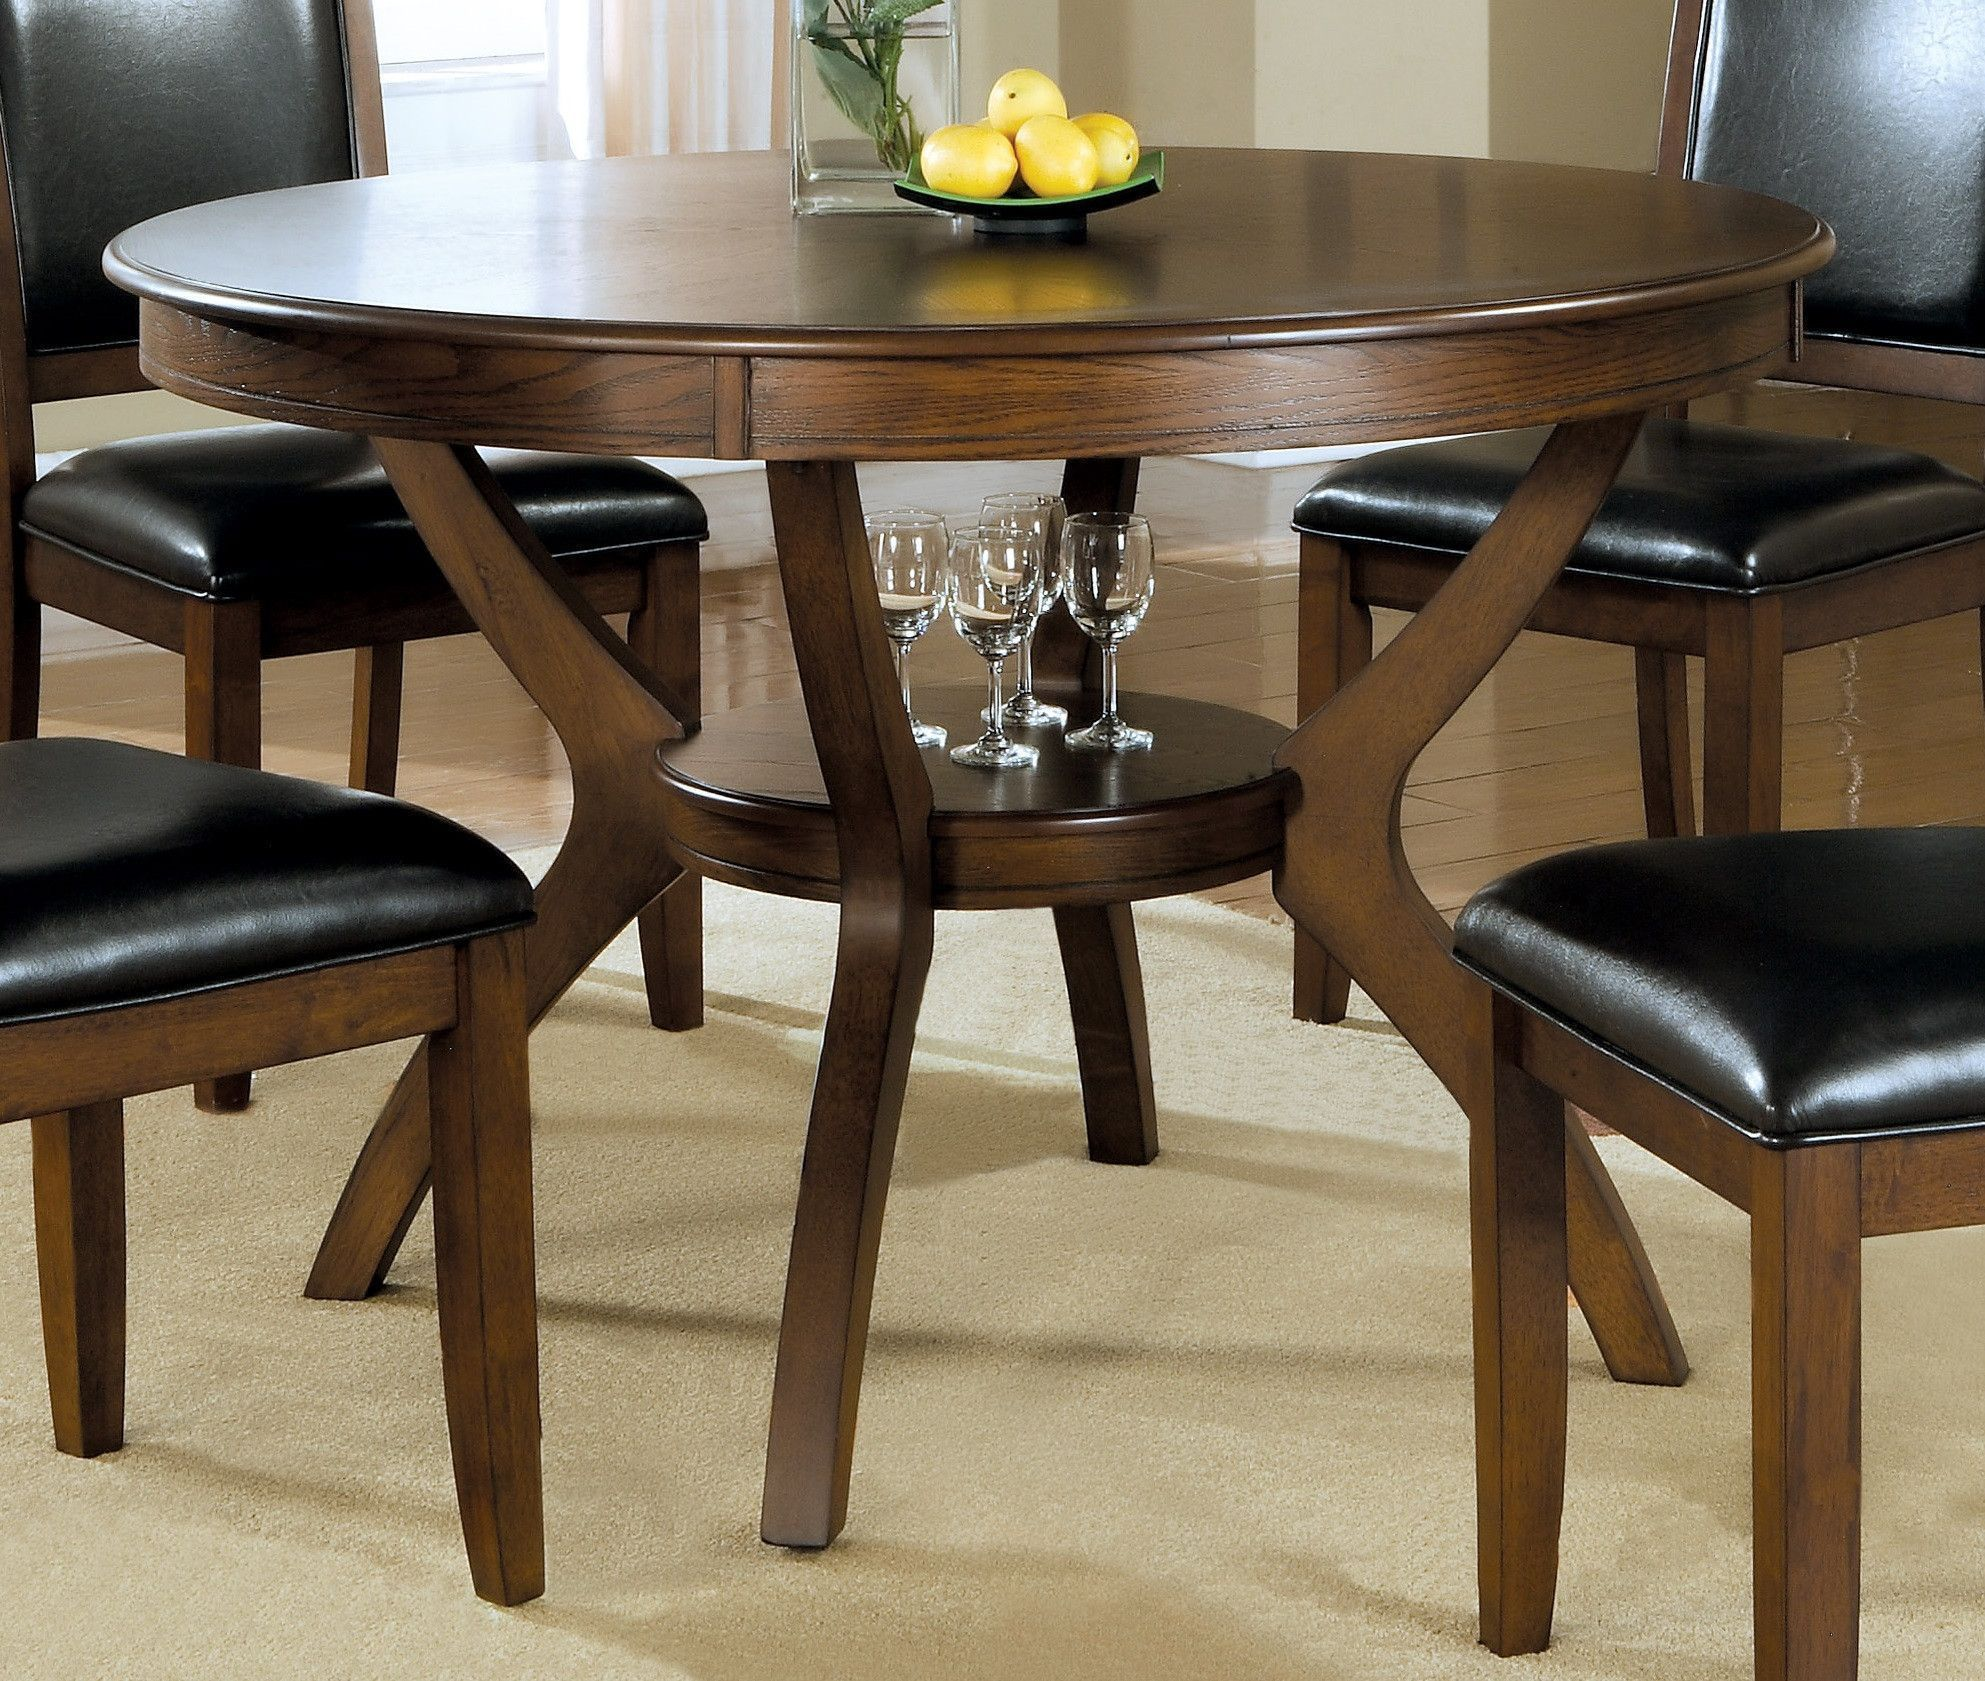 Round Dining Table in Brown Walnut Finish